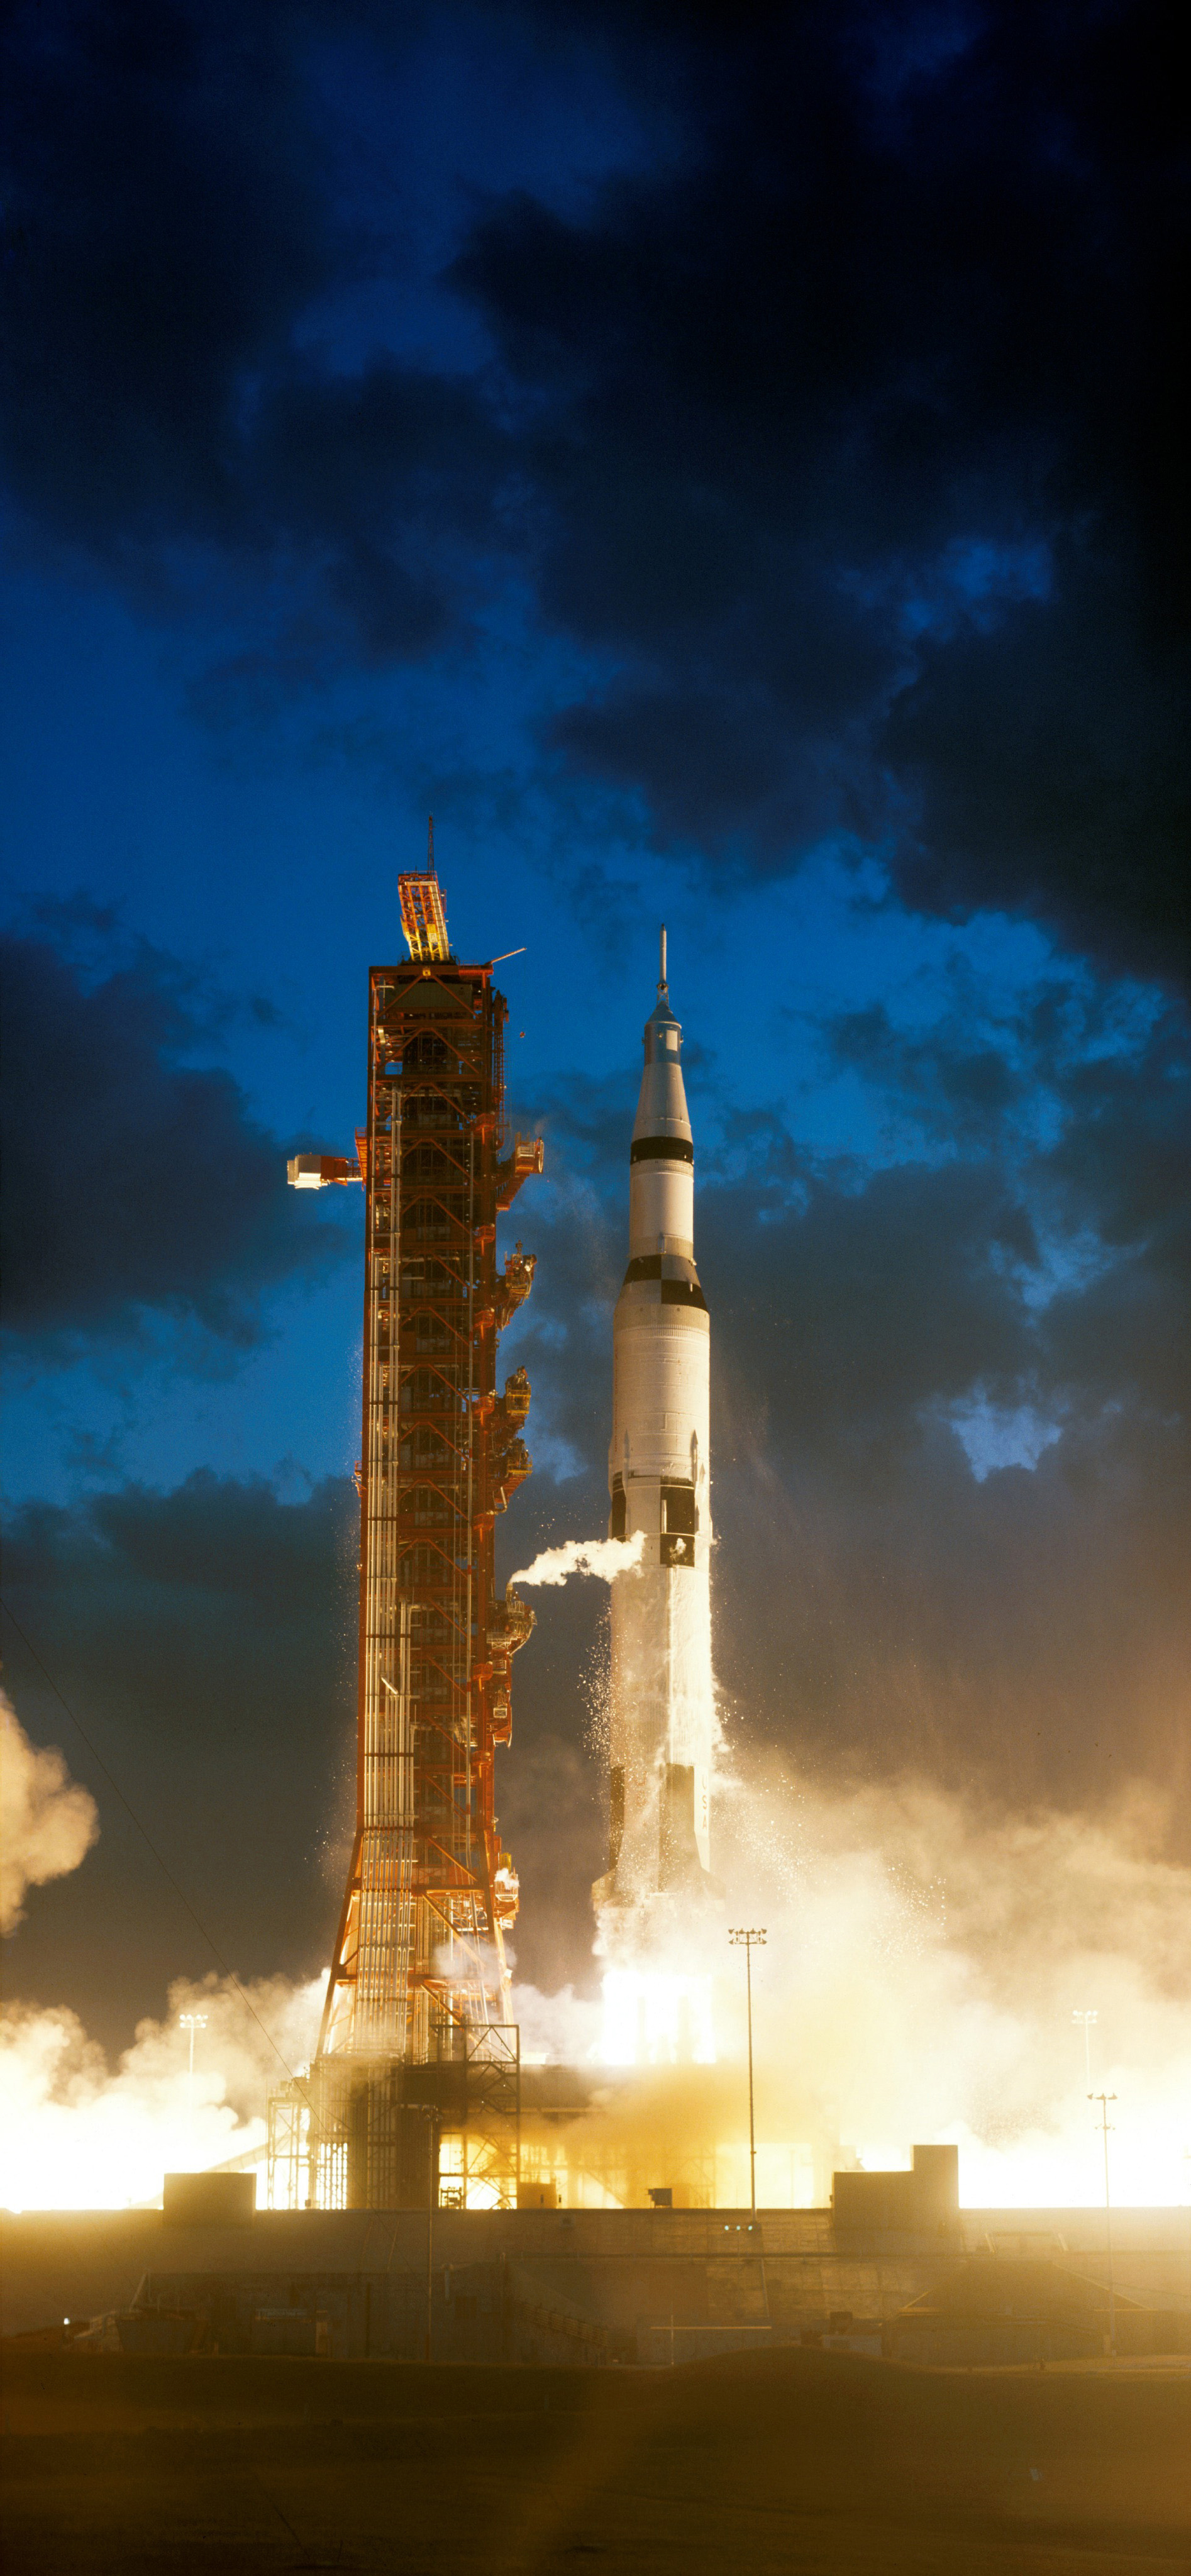 hd apollo 1 rocket - photo #4